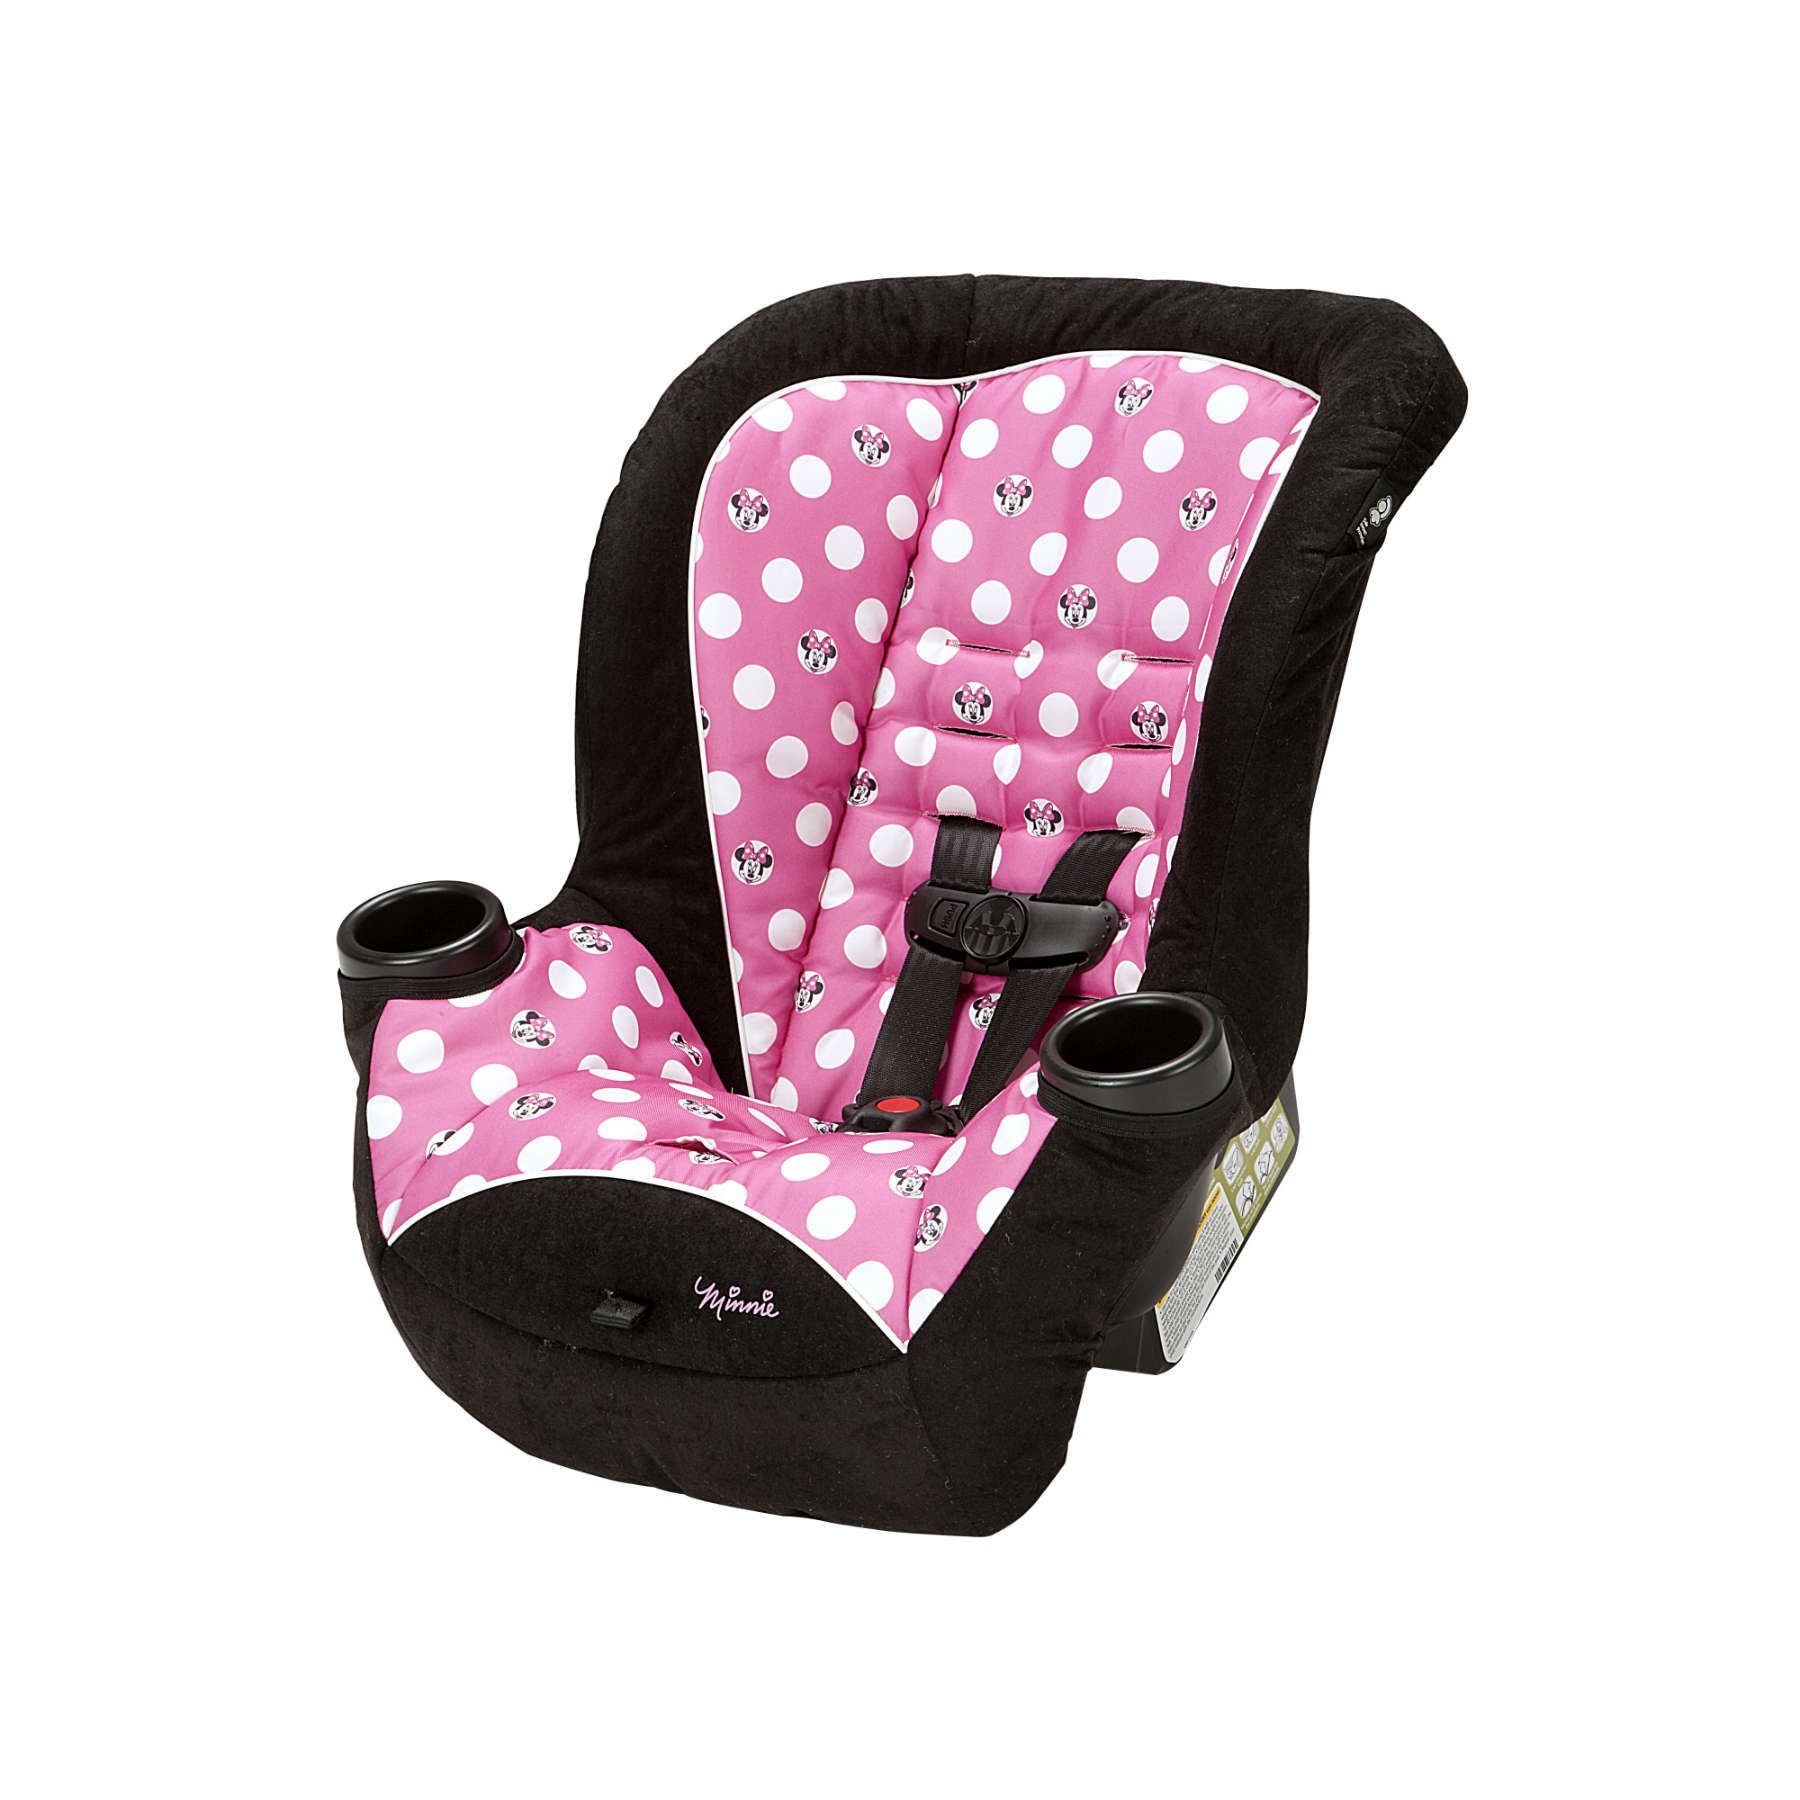 Baby kid stuff cosco apt convertible car seat minnie mouse booster baby infant new cosco apt convertible car seat minnie mouse booster baby infant new